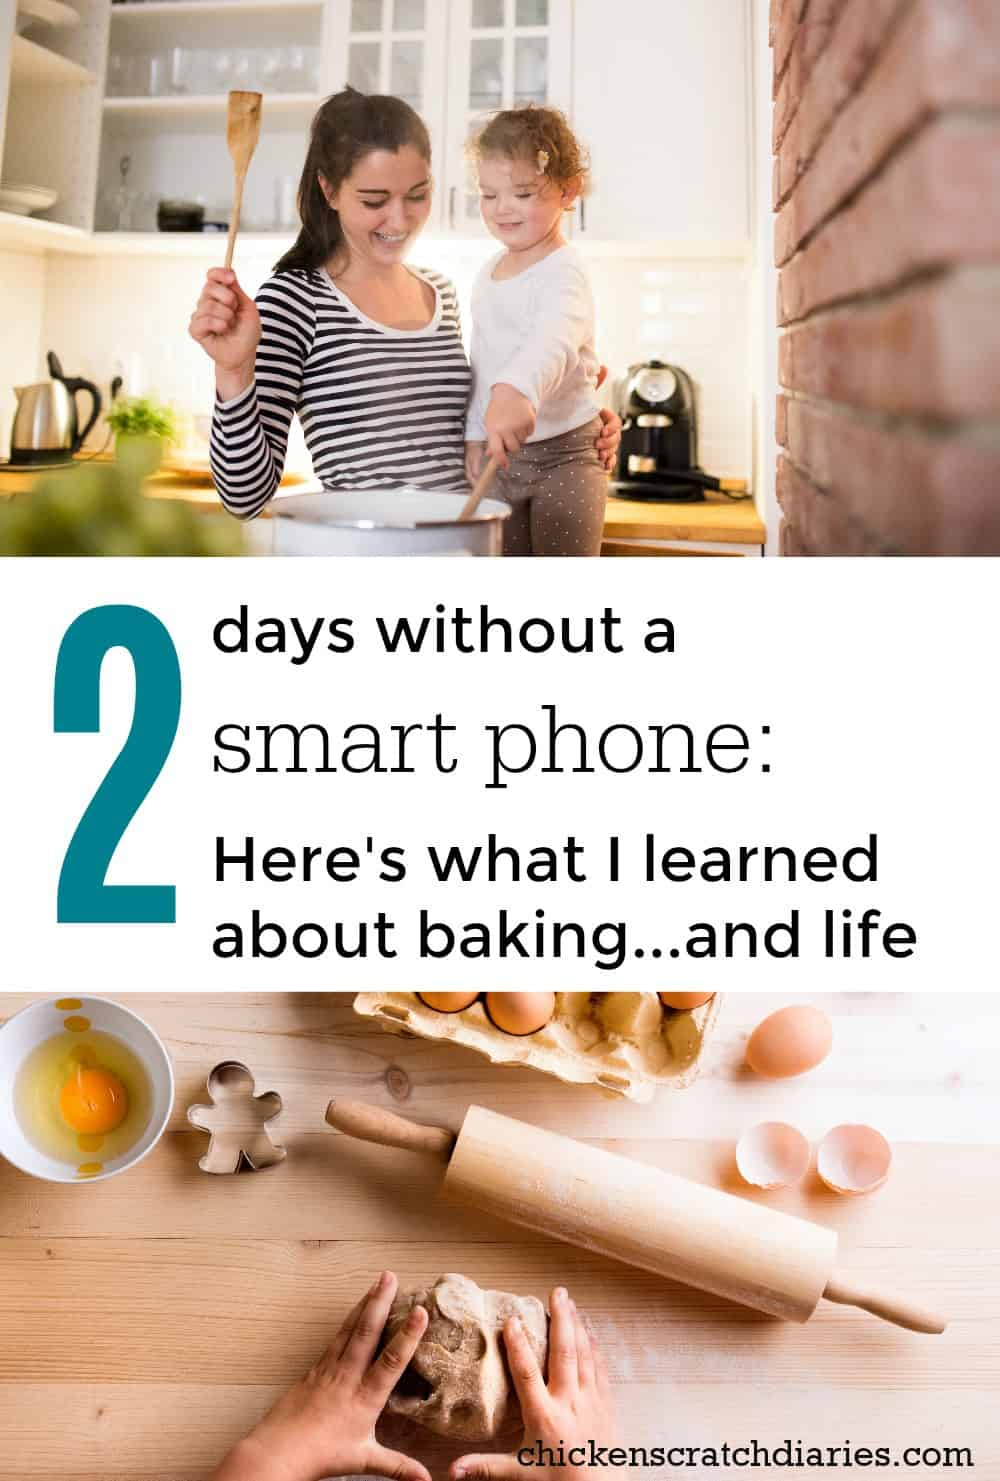 Smartphone addiction can creep in even when you think you're being intentional with your time. Sometimes we don't realize how much time we really DO have until we break the chain! #Technology #MomLife #Smartphone #IntentionalMom